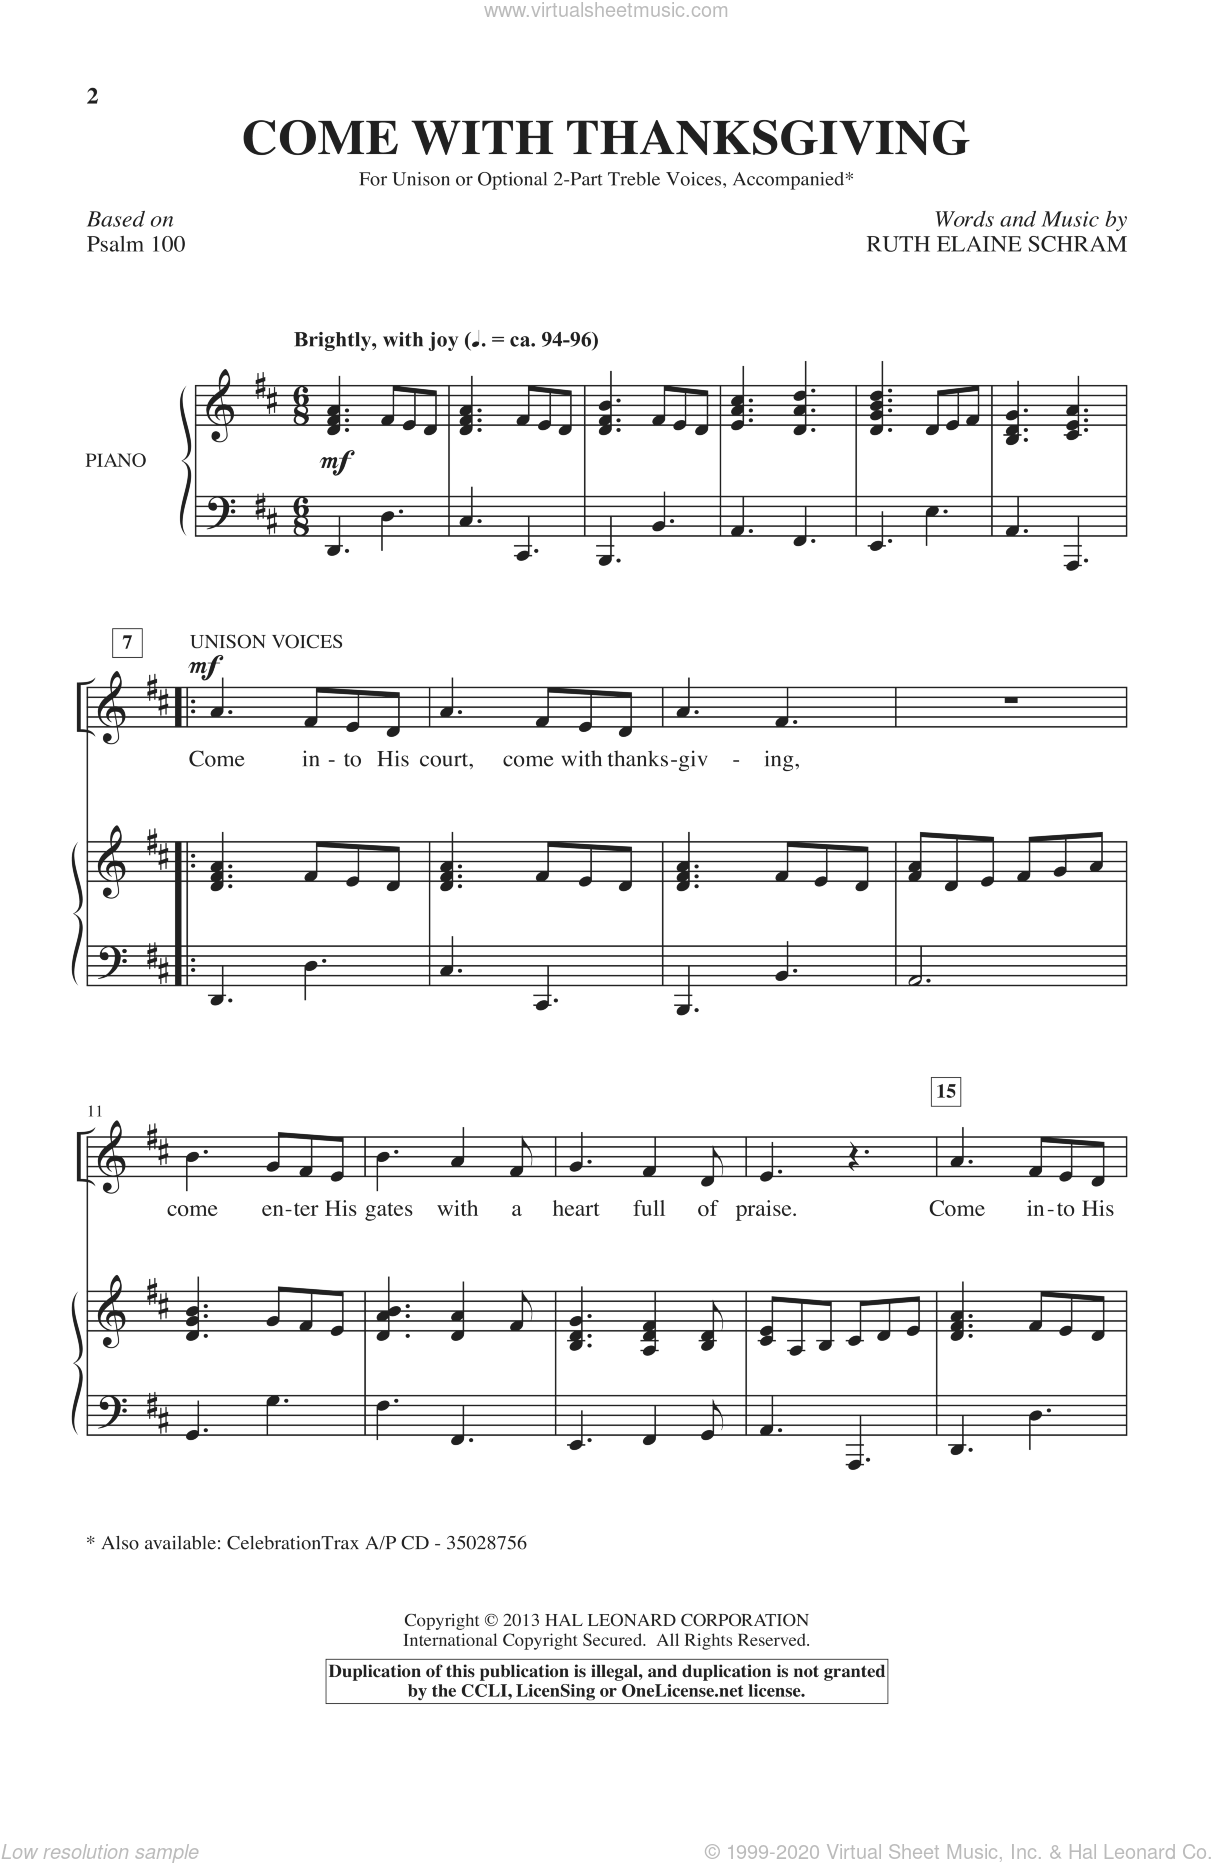 Come With Thanksgiving sheet music for choir (Unison) by Ruth Elaine Schram, intermediate skill level